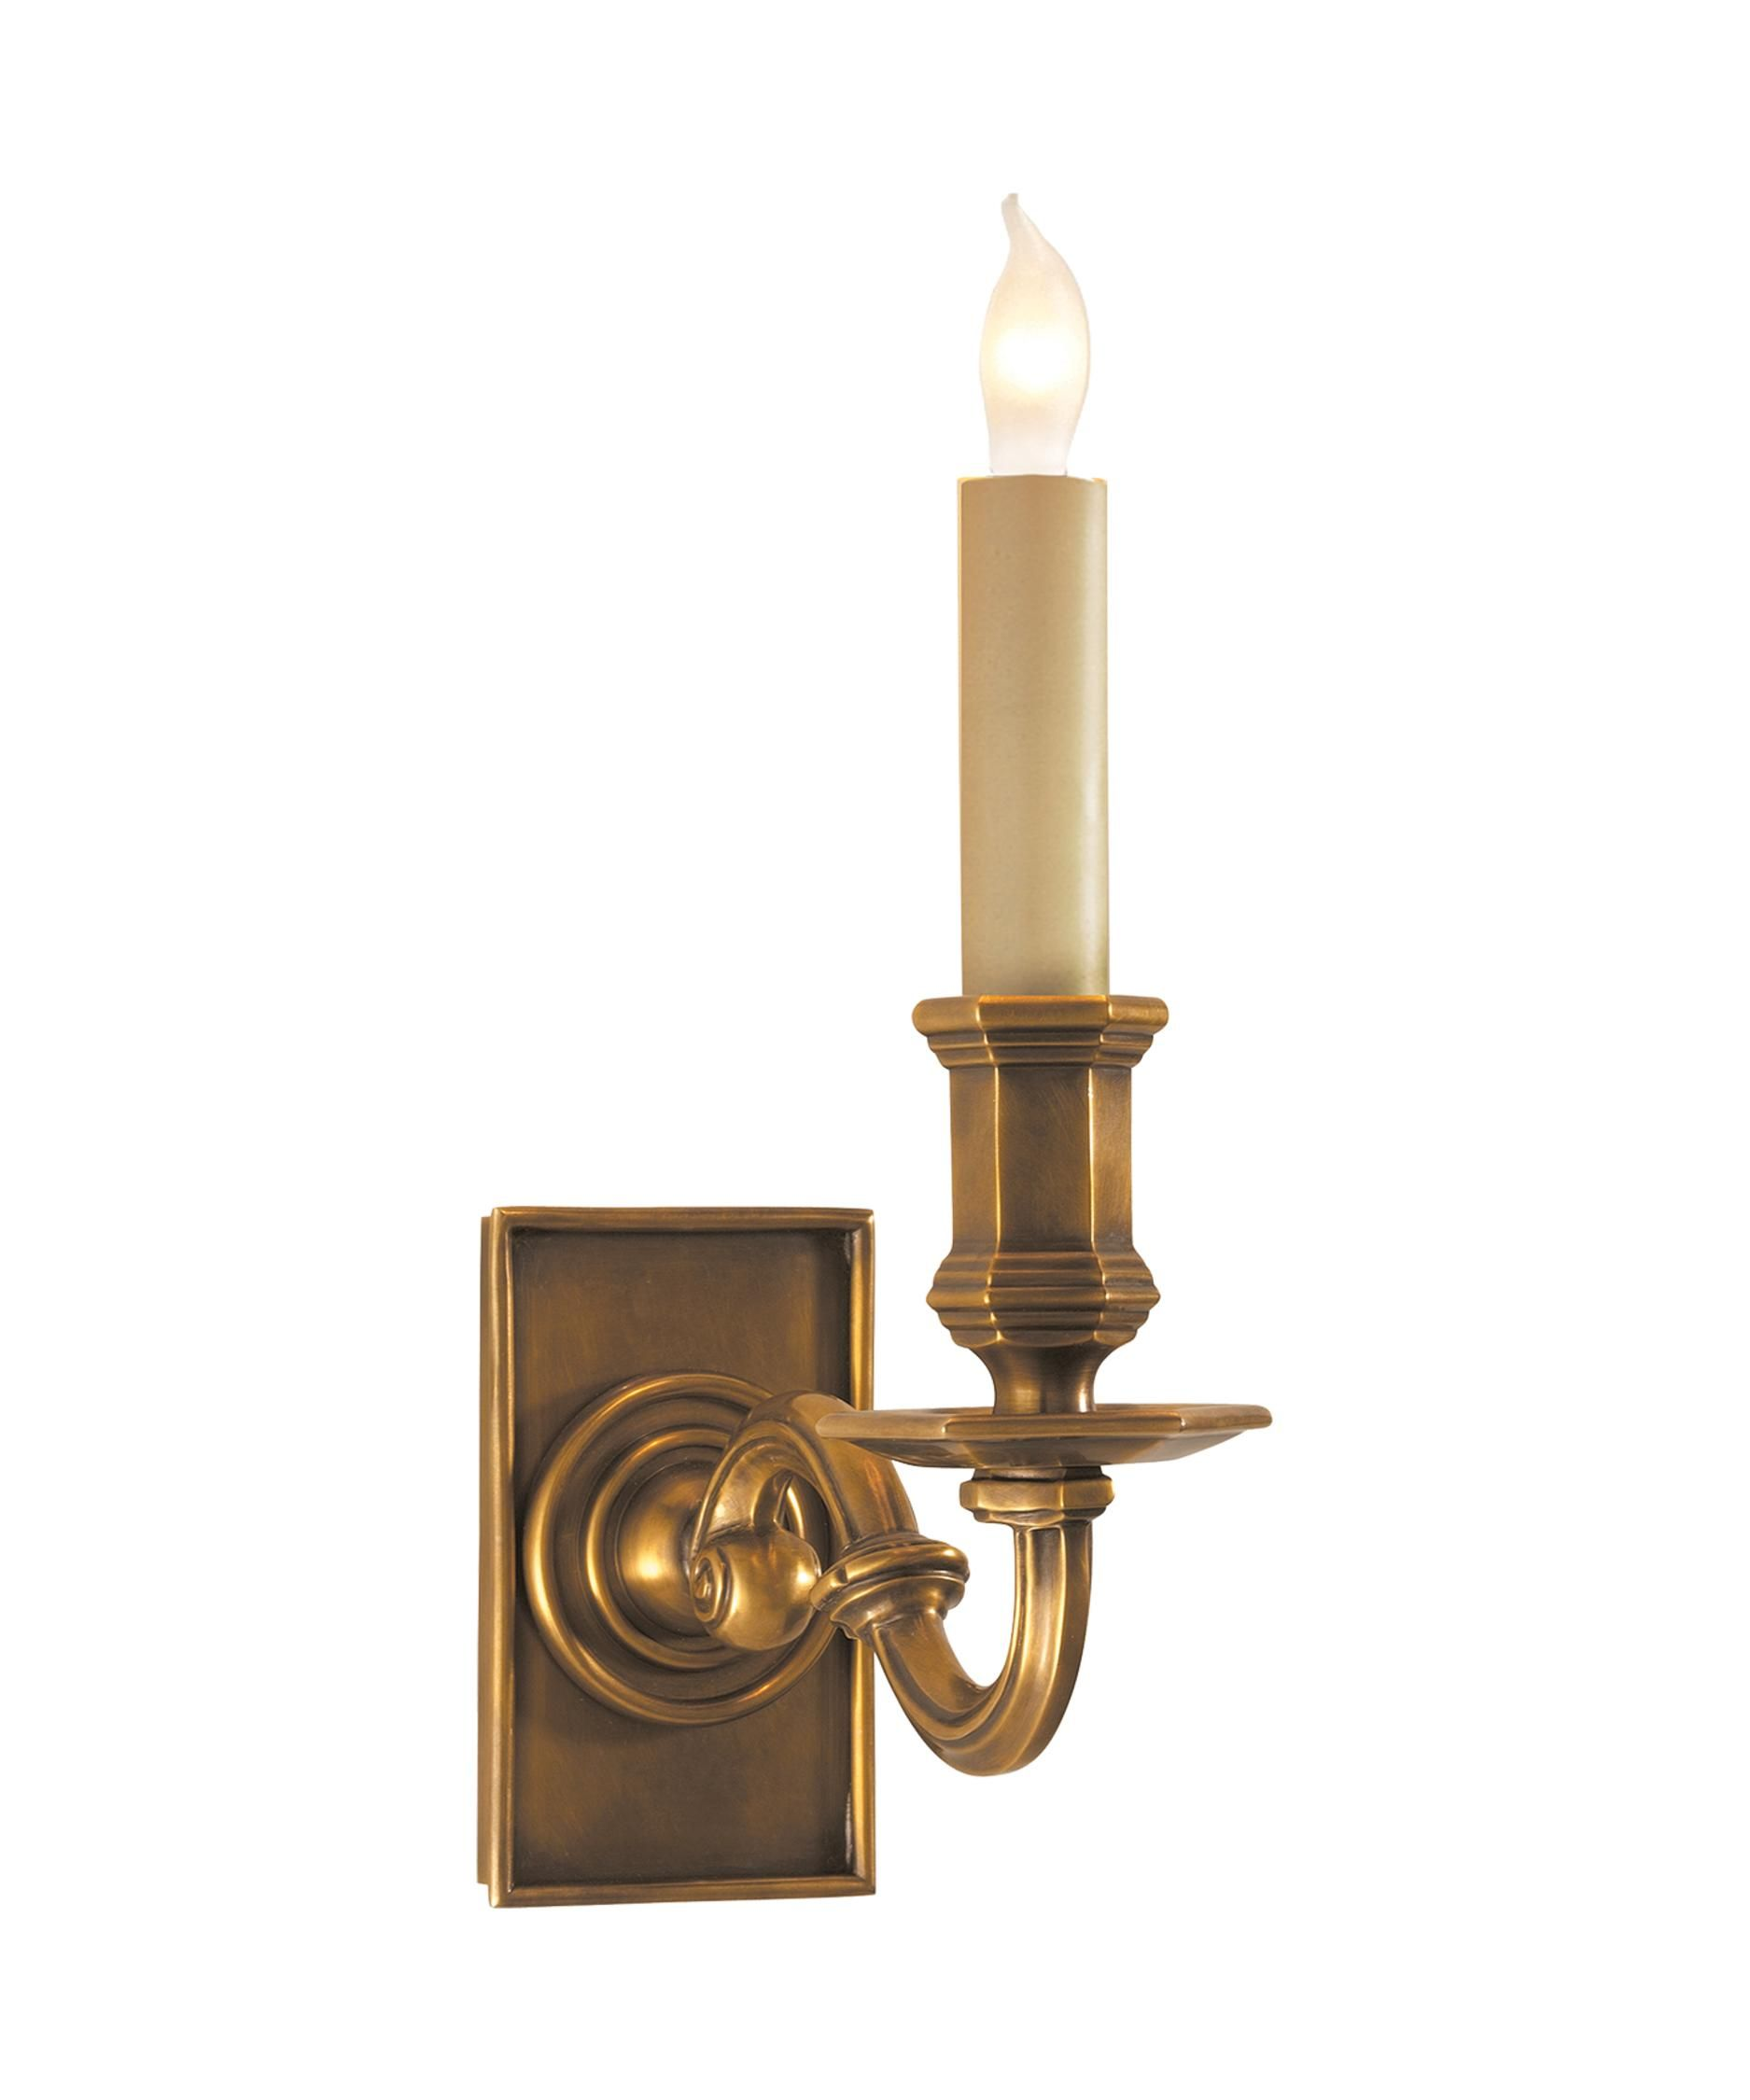 sconces lighting kelly high visual the wallpaper photos sconce new of comfort co montauk wall definition wearstler